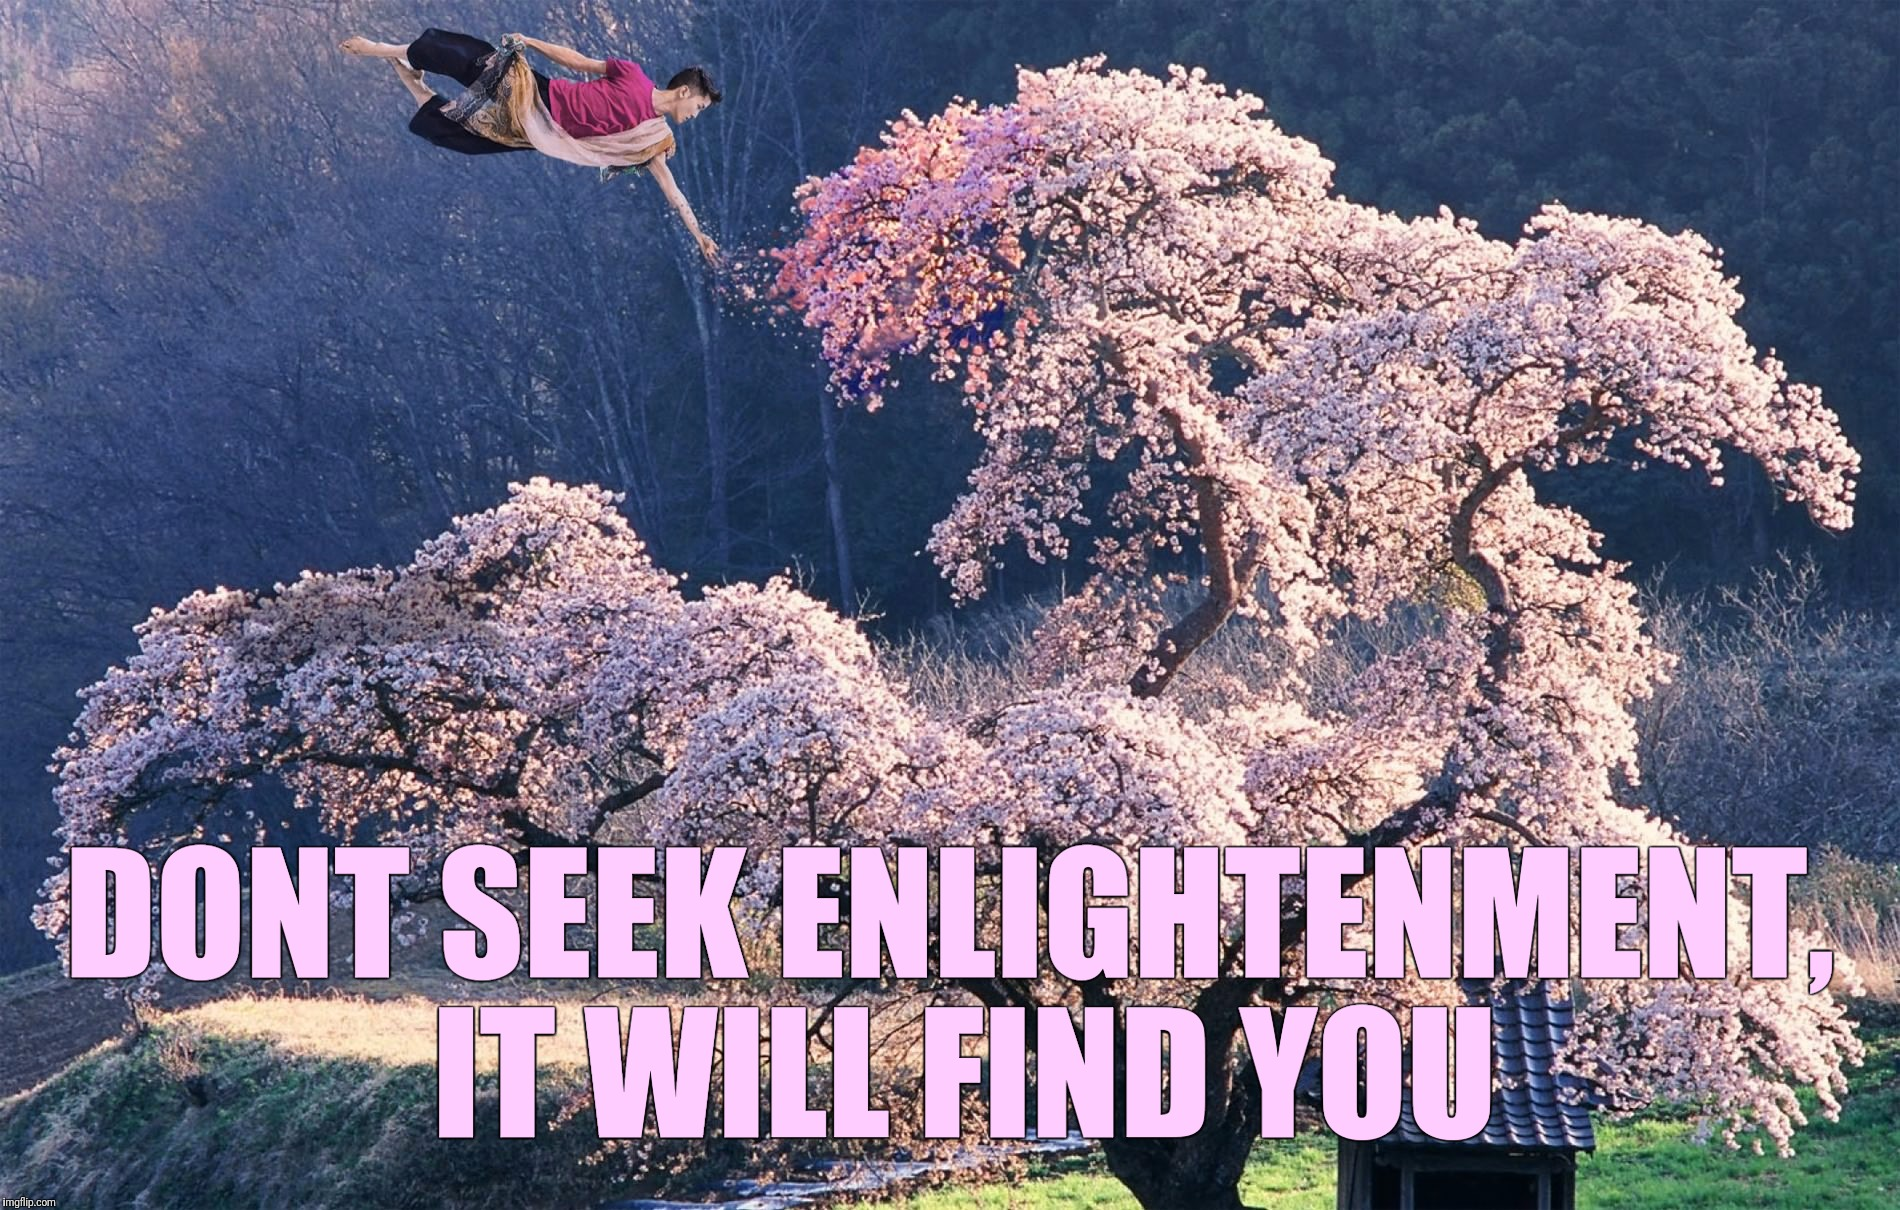 DONT SEEK ENLIGHTENMENT, IT WILL FIND YOU | made w/ Imgflip meme maker